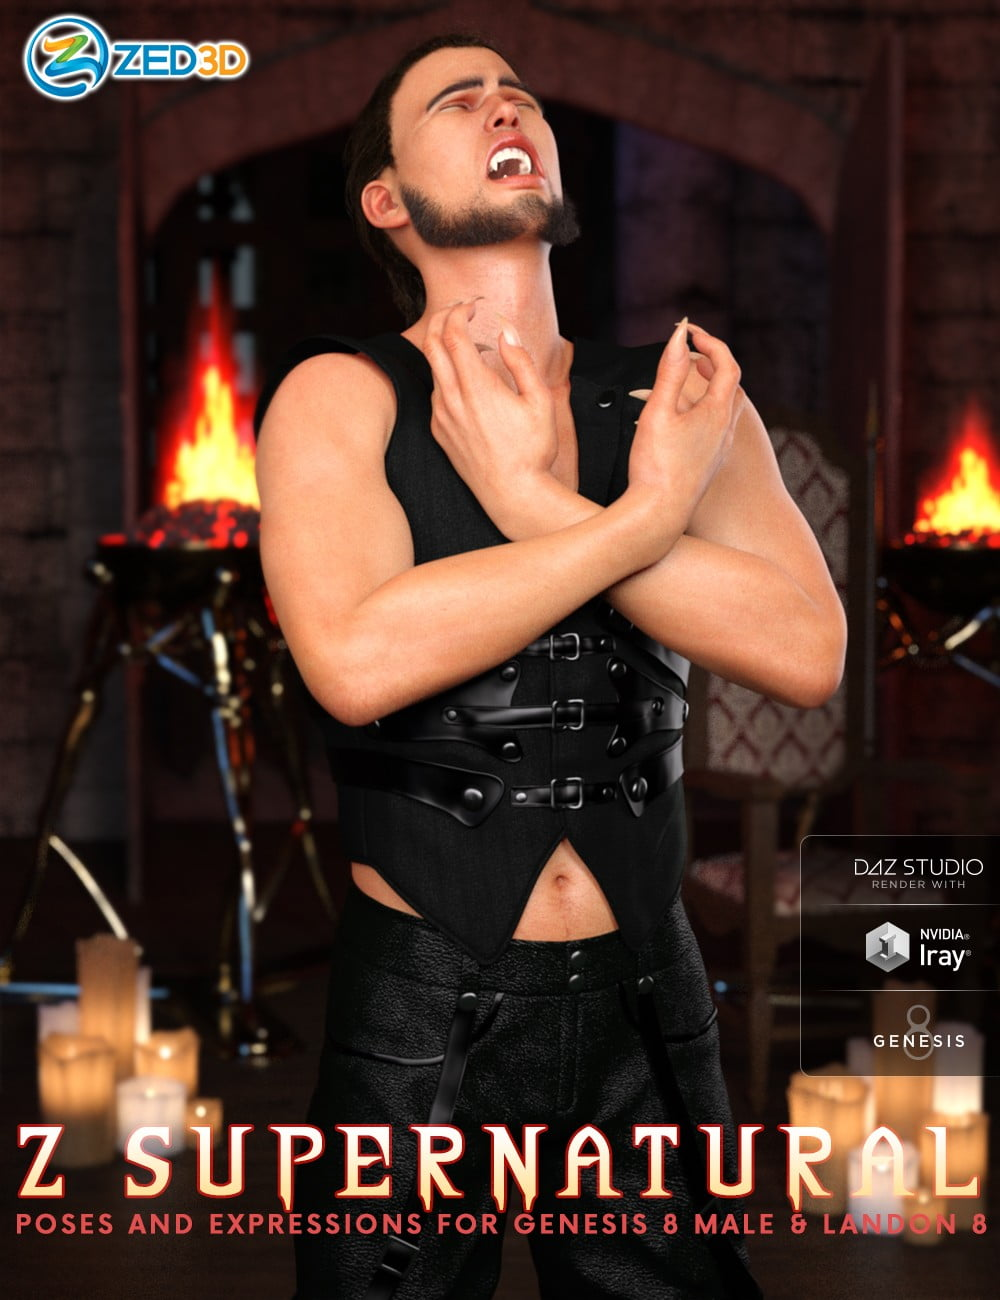 Z Supernatural Poses and Expressions for Genesis 8 Male and Landon 8